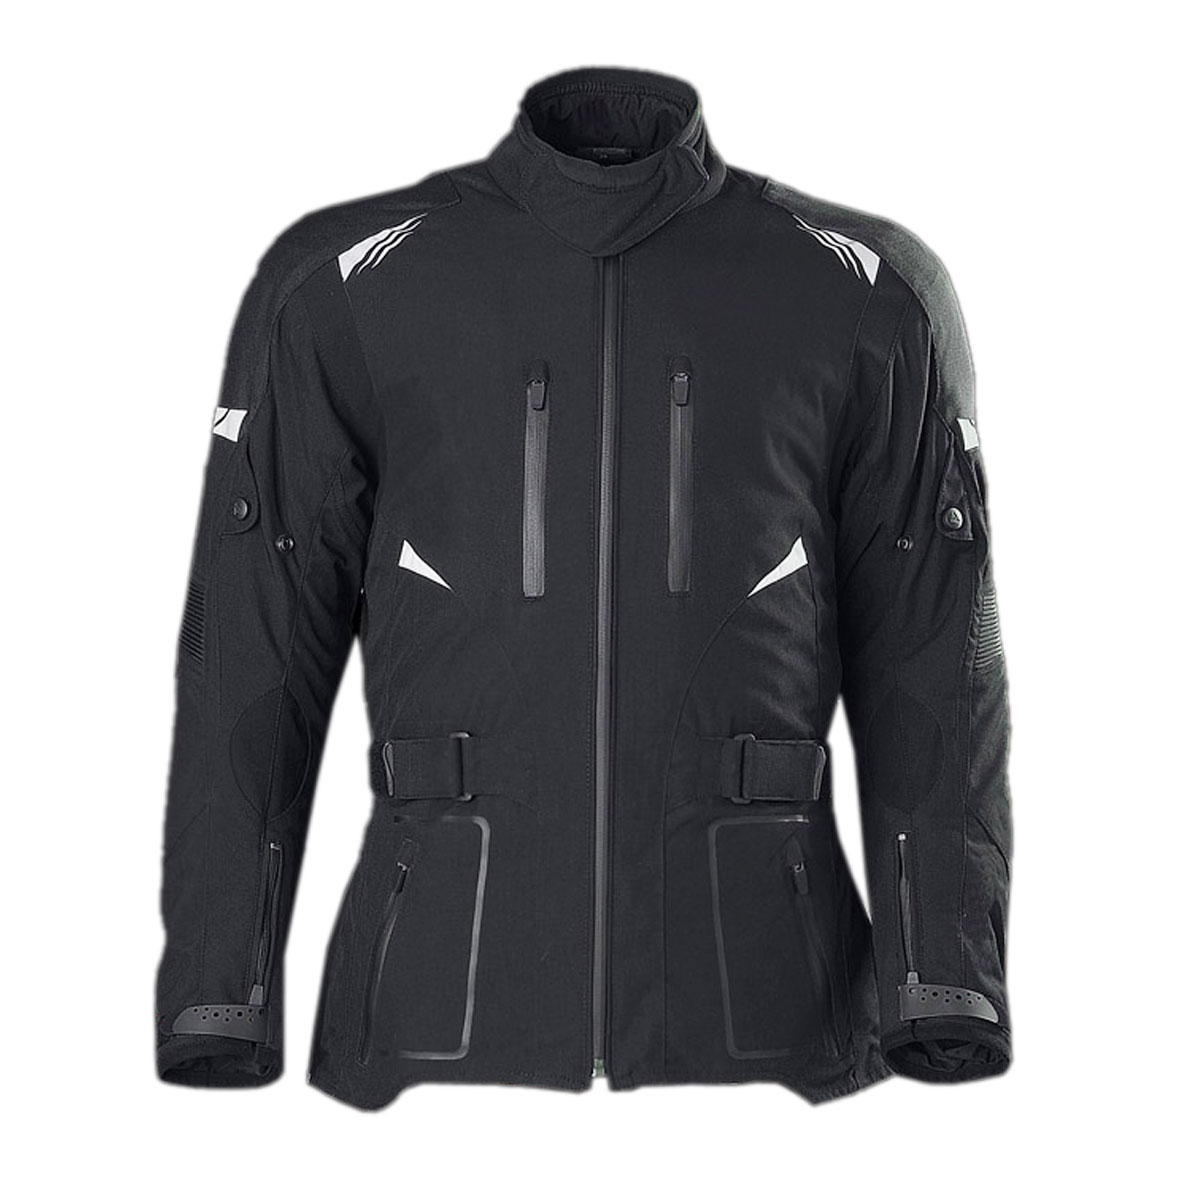 BLACK FEMALE CORDURA JACKET WITH FRONT ZIPS